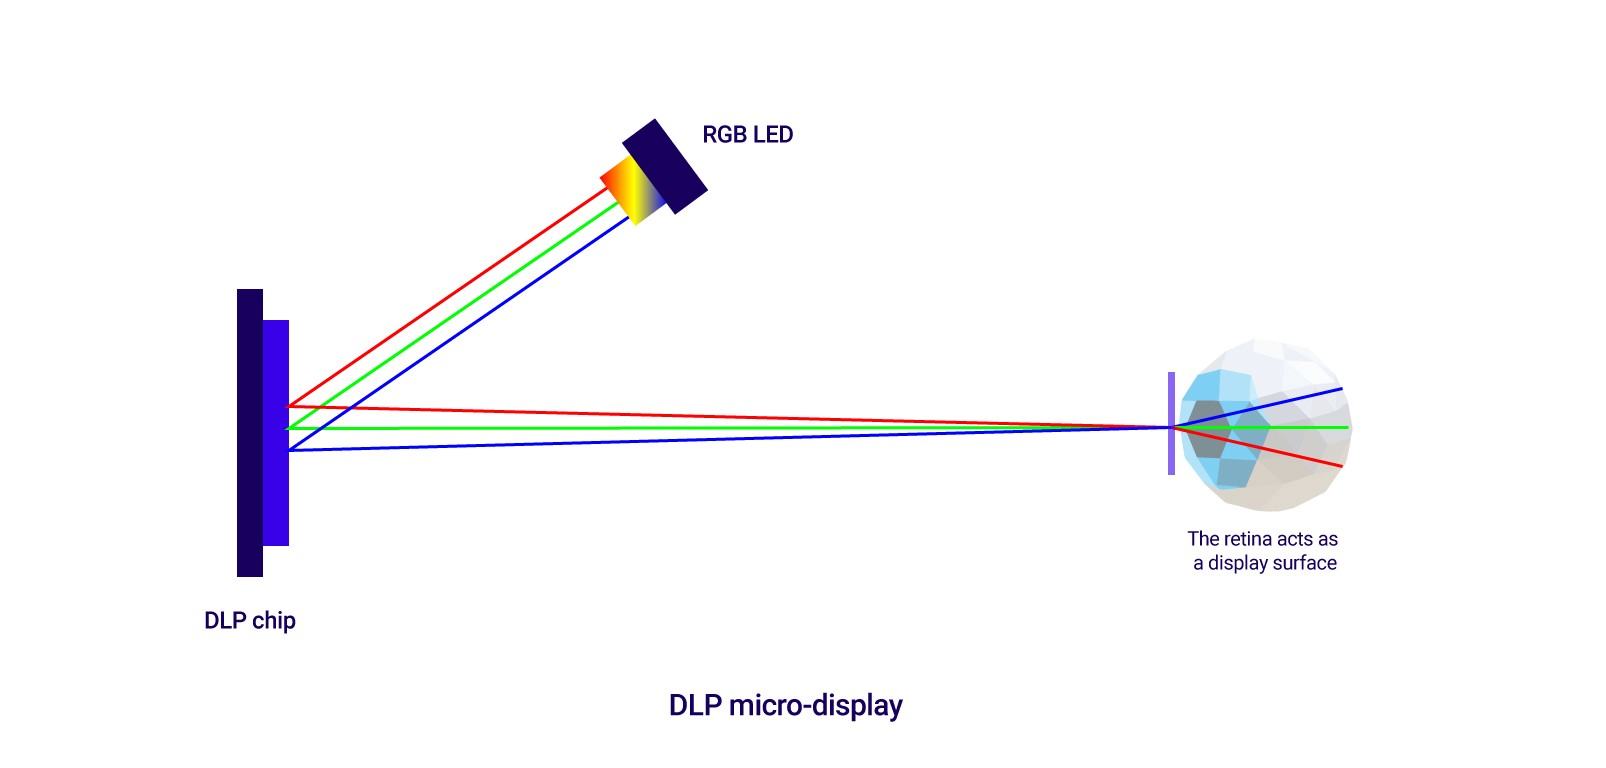 Fundamentals of display technologies for Augmented and Virtual